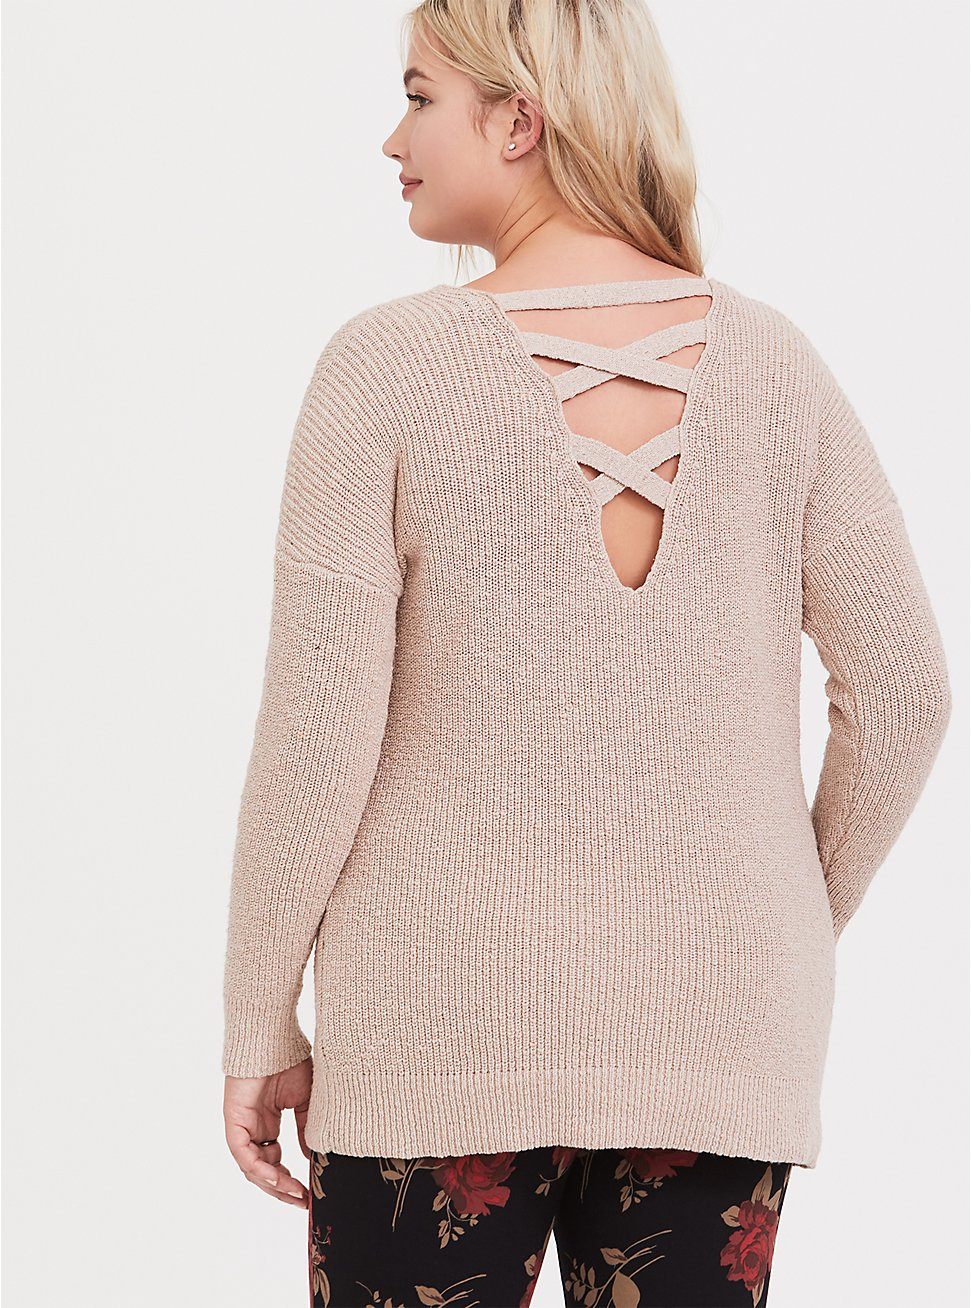 Tan Crisscross Back Tunic Sweater, MUSHROOM, hi-res